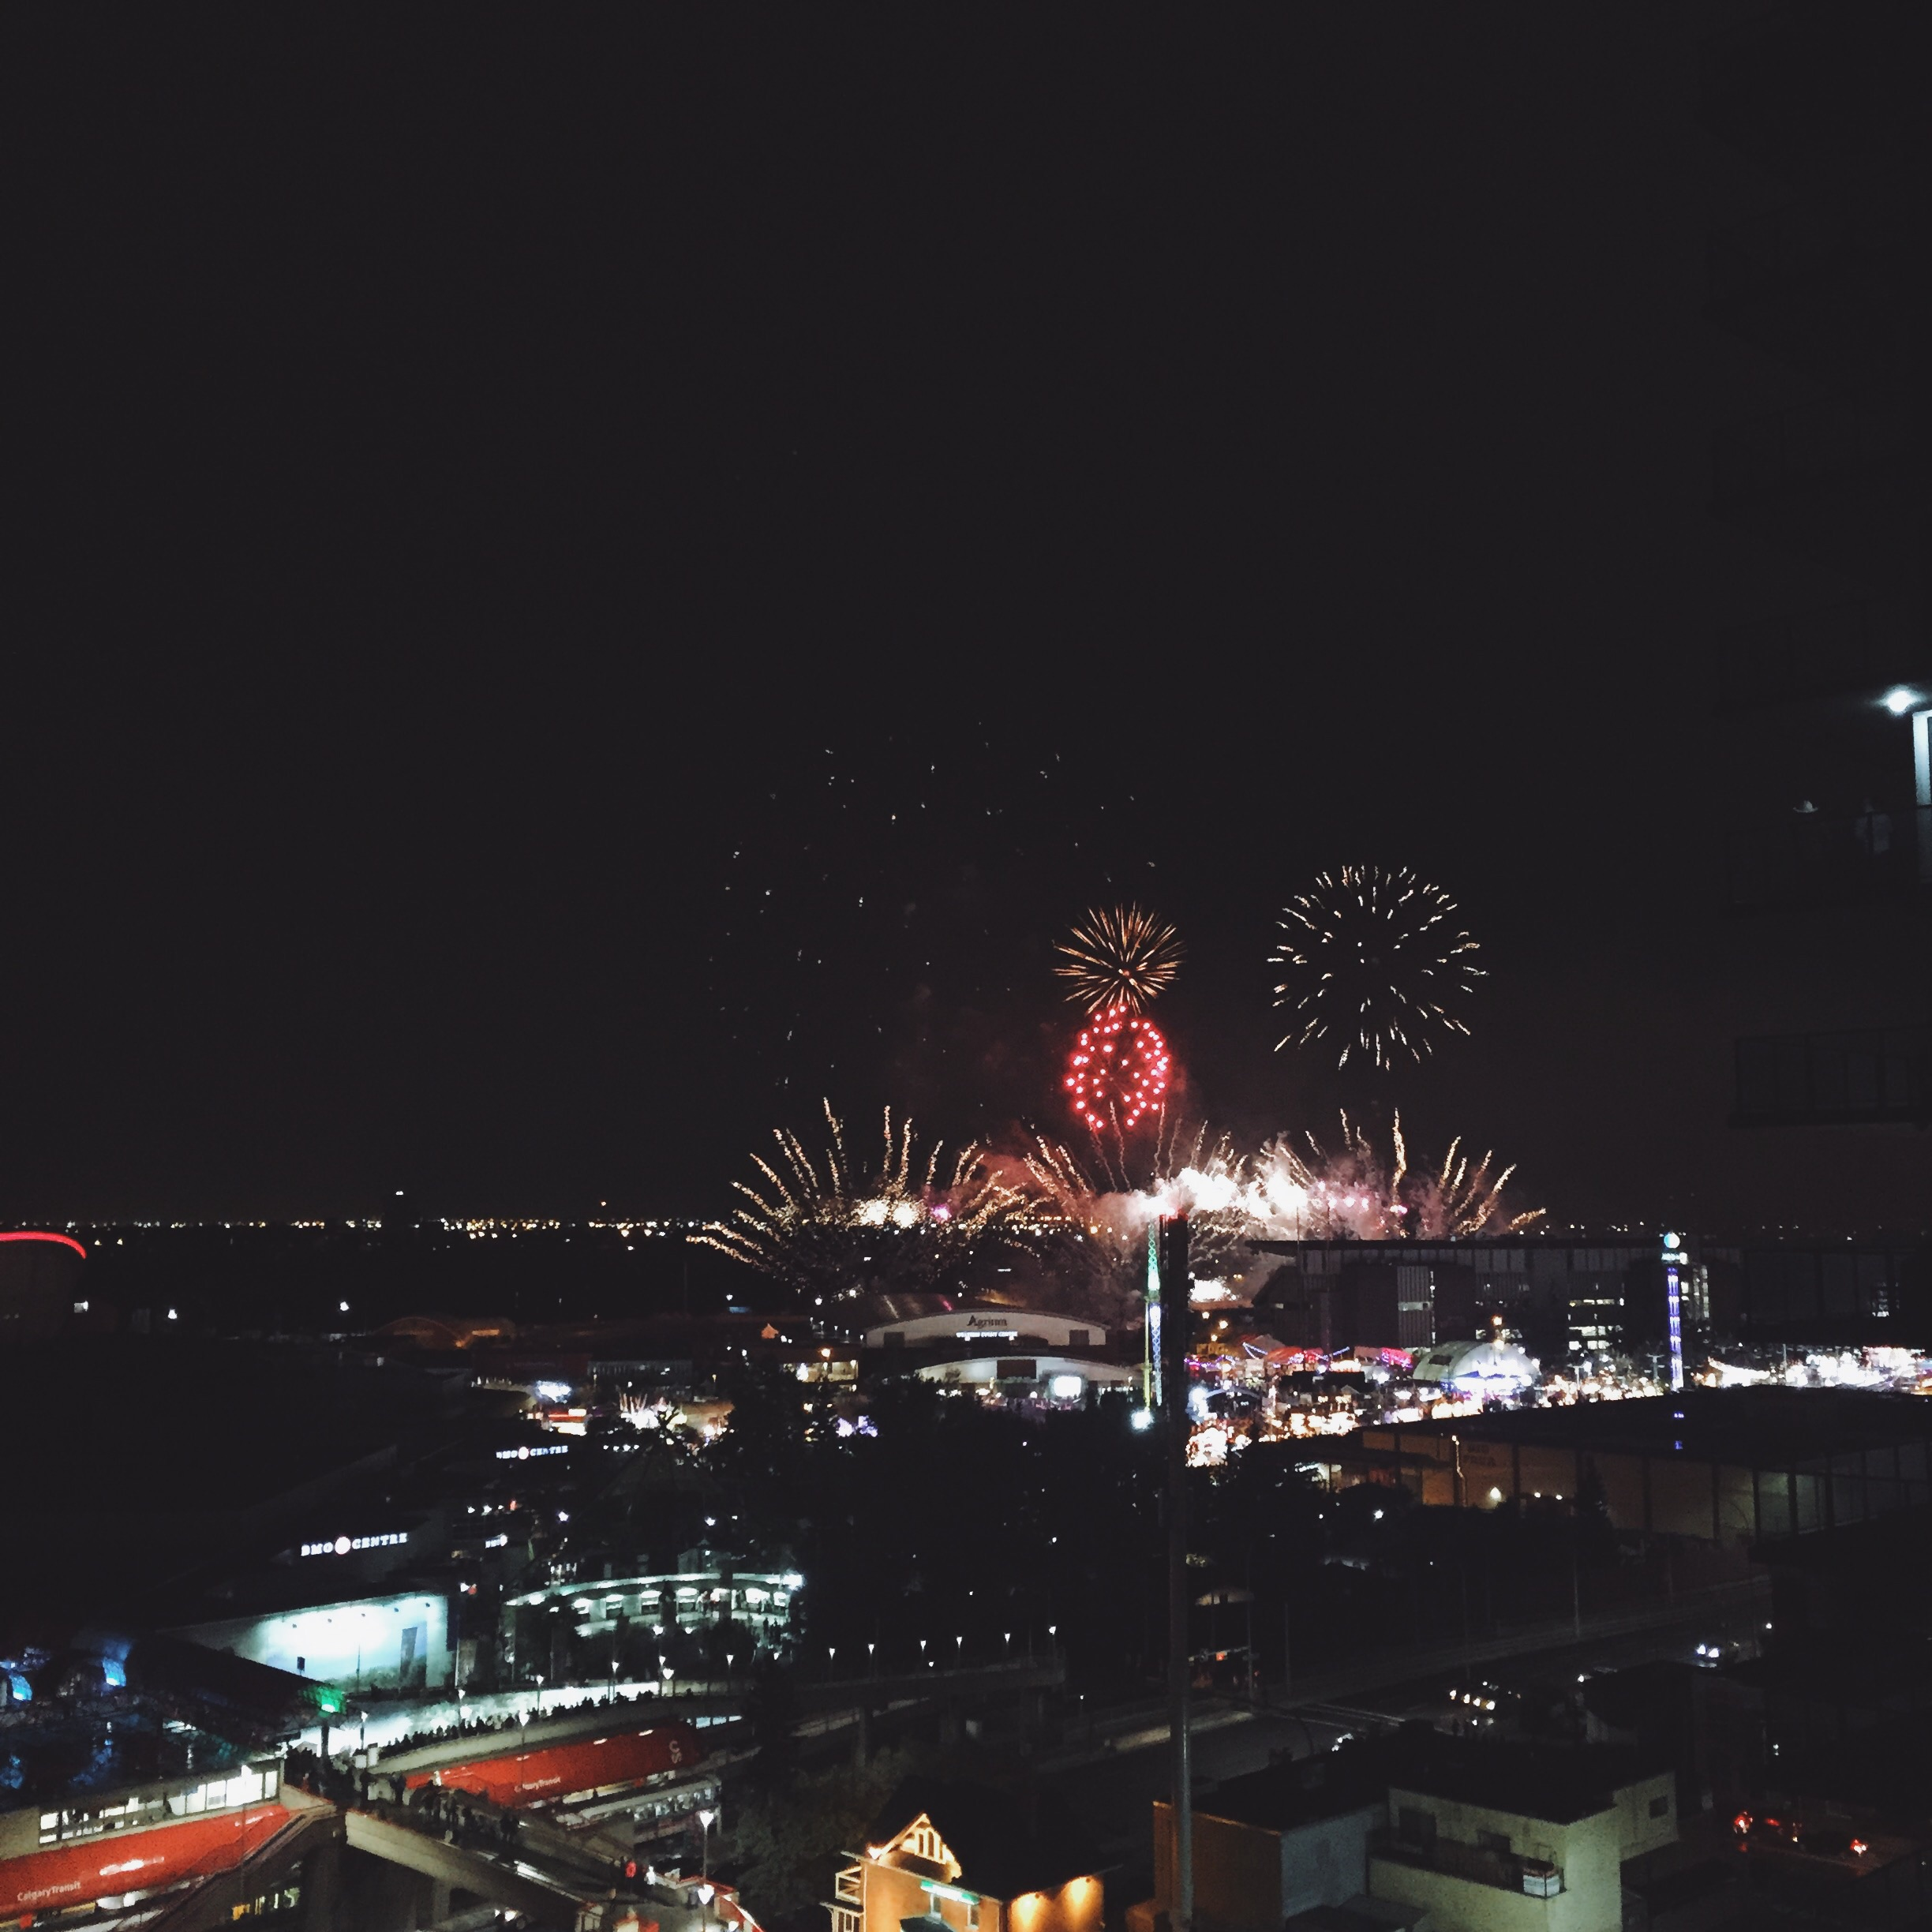 Fireworks every night.